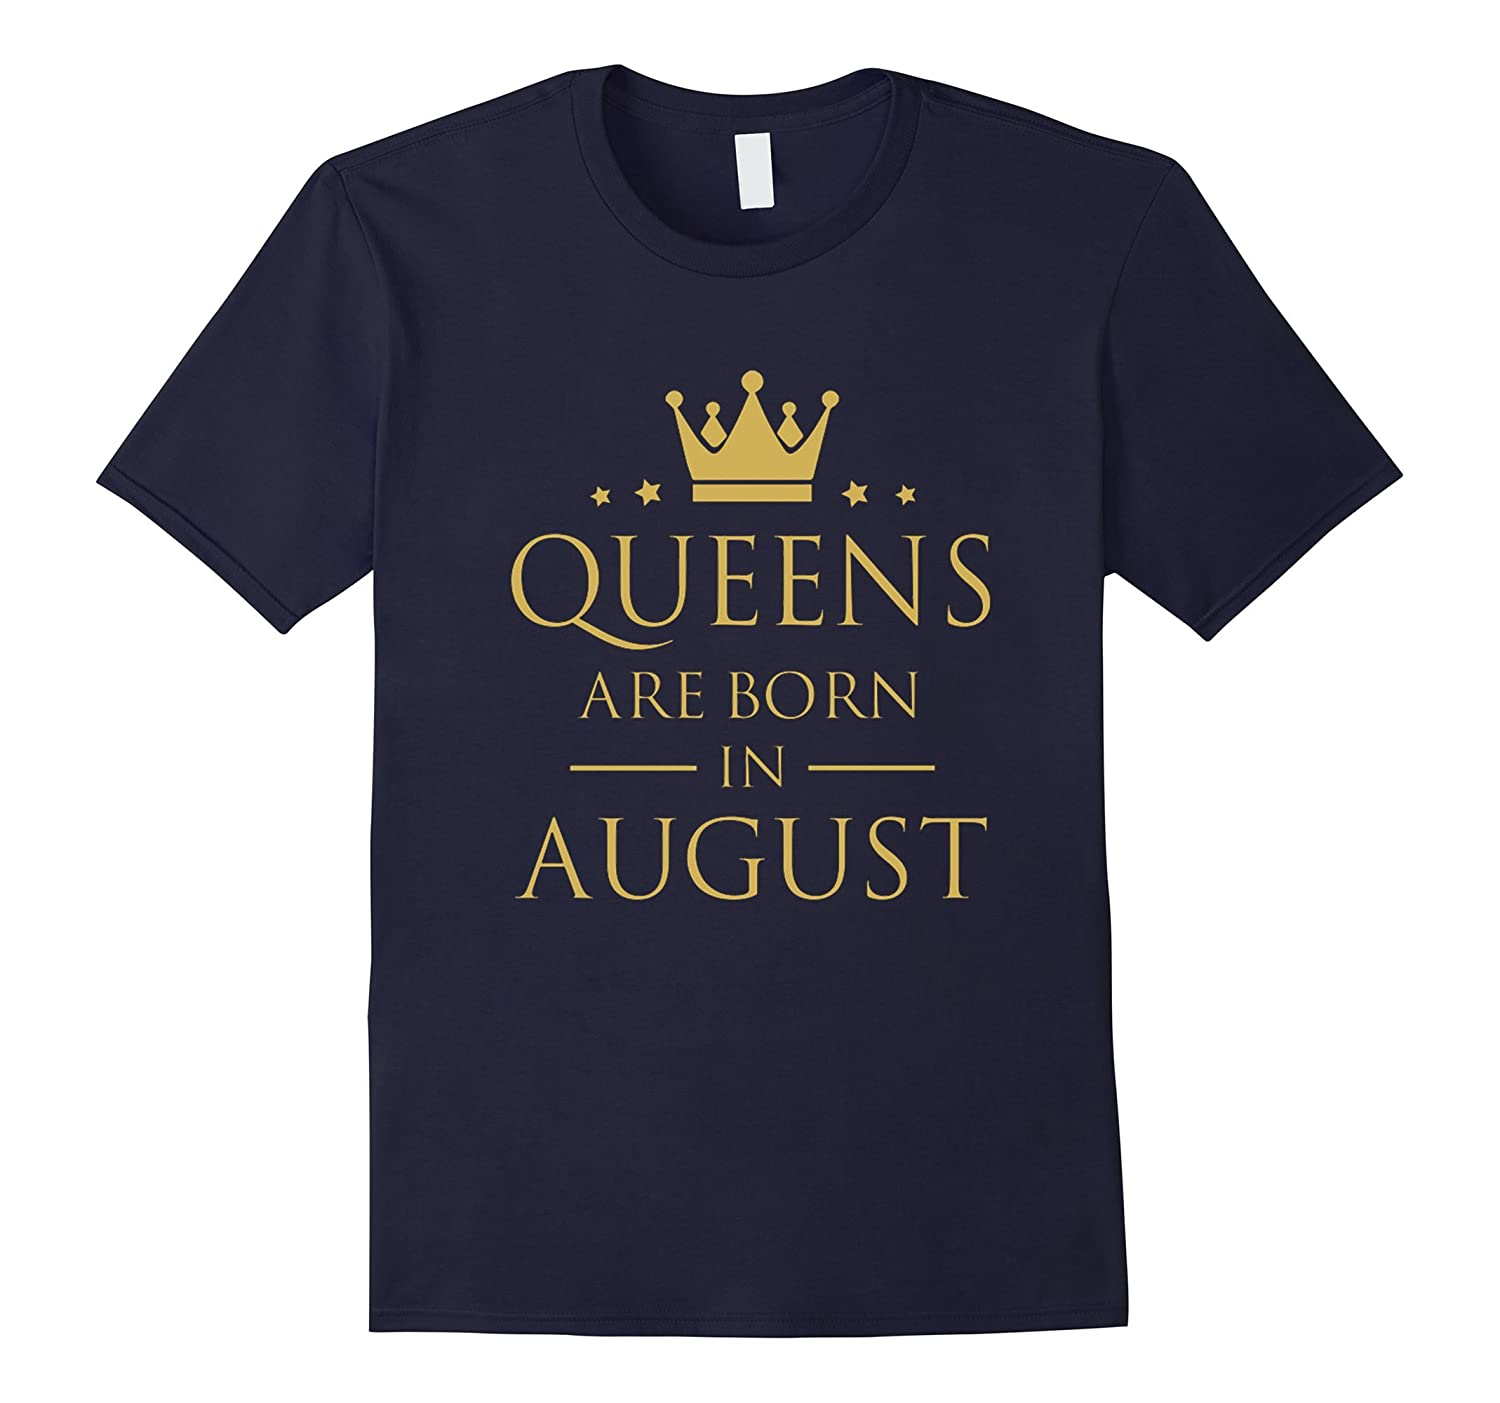 August birthday t shirt, Queens Are Born In August T Shirt-TH